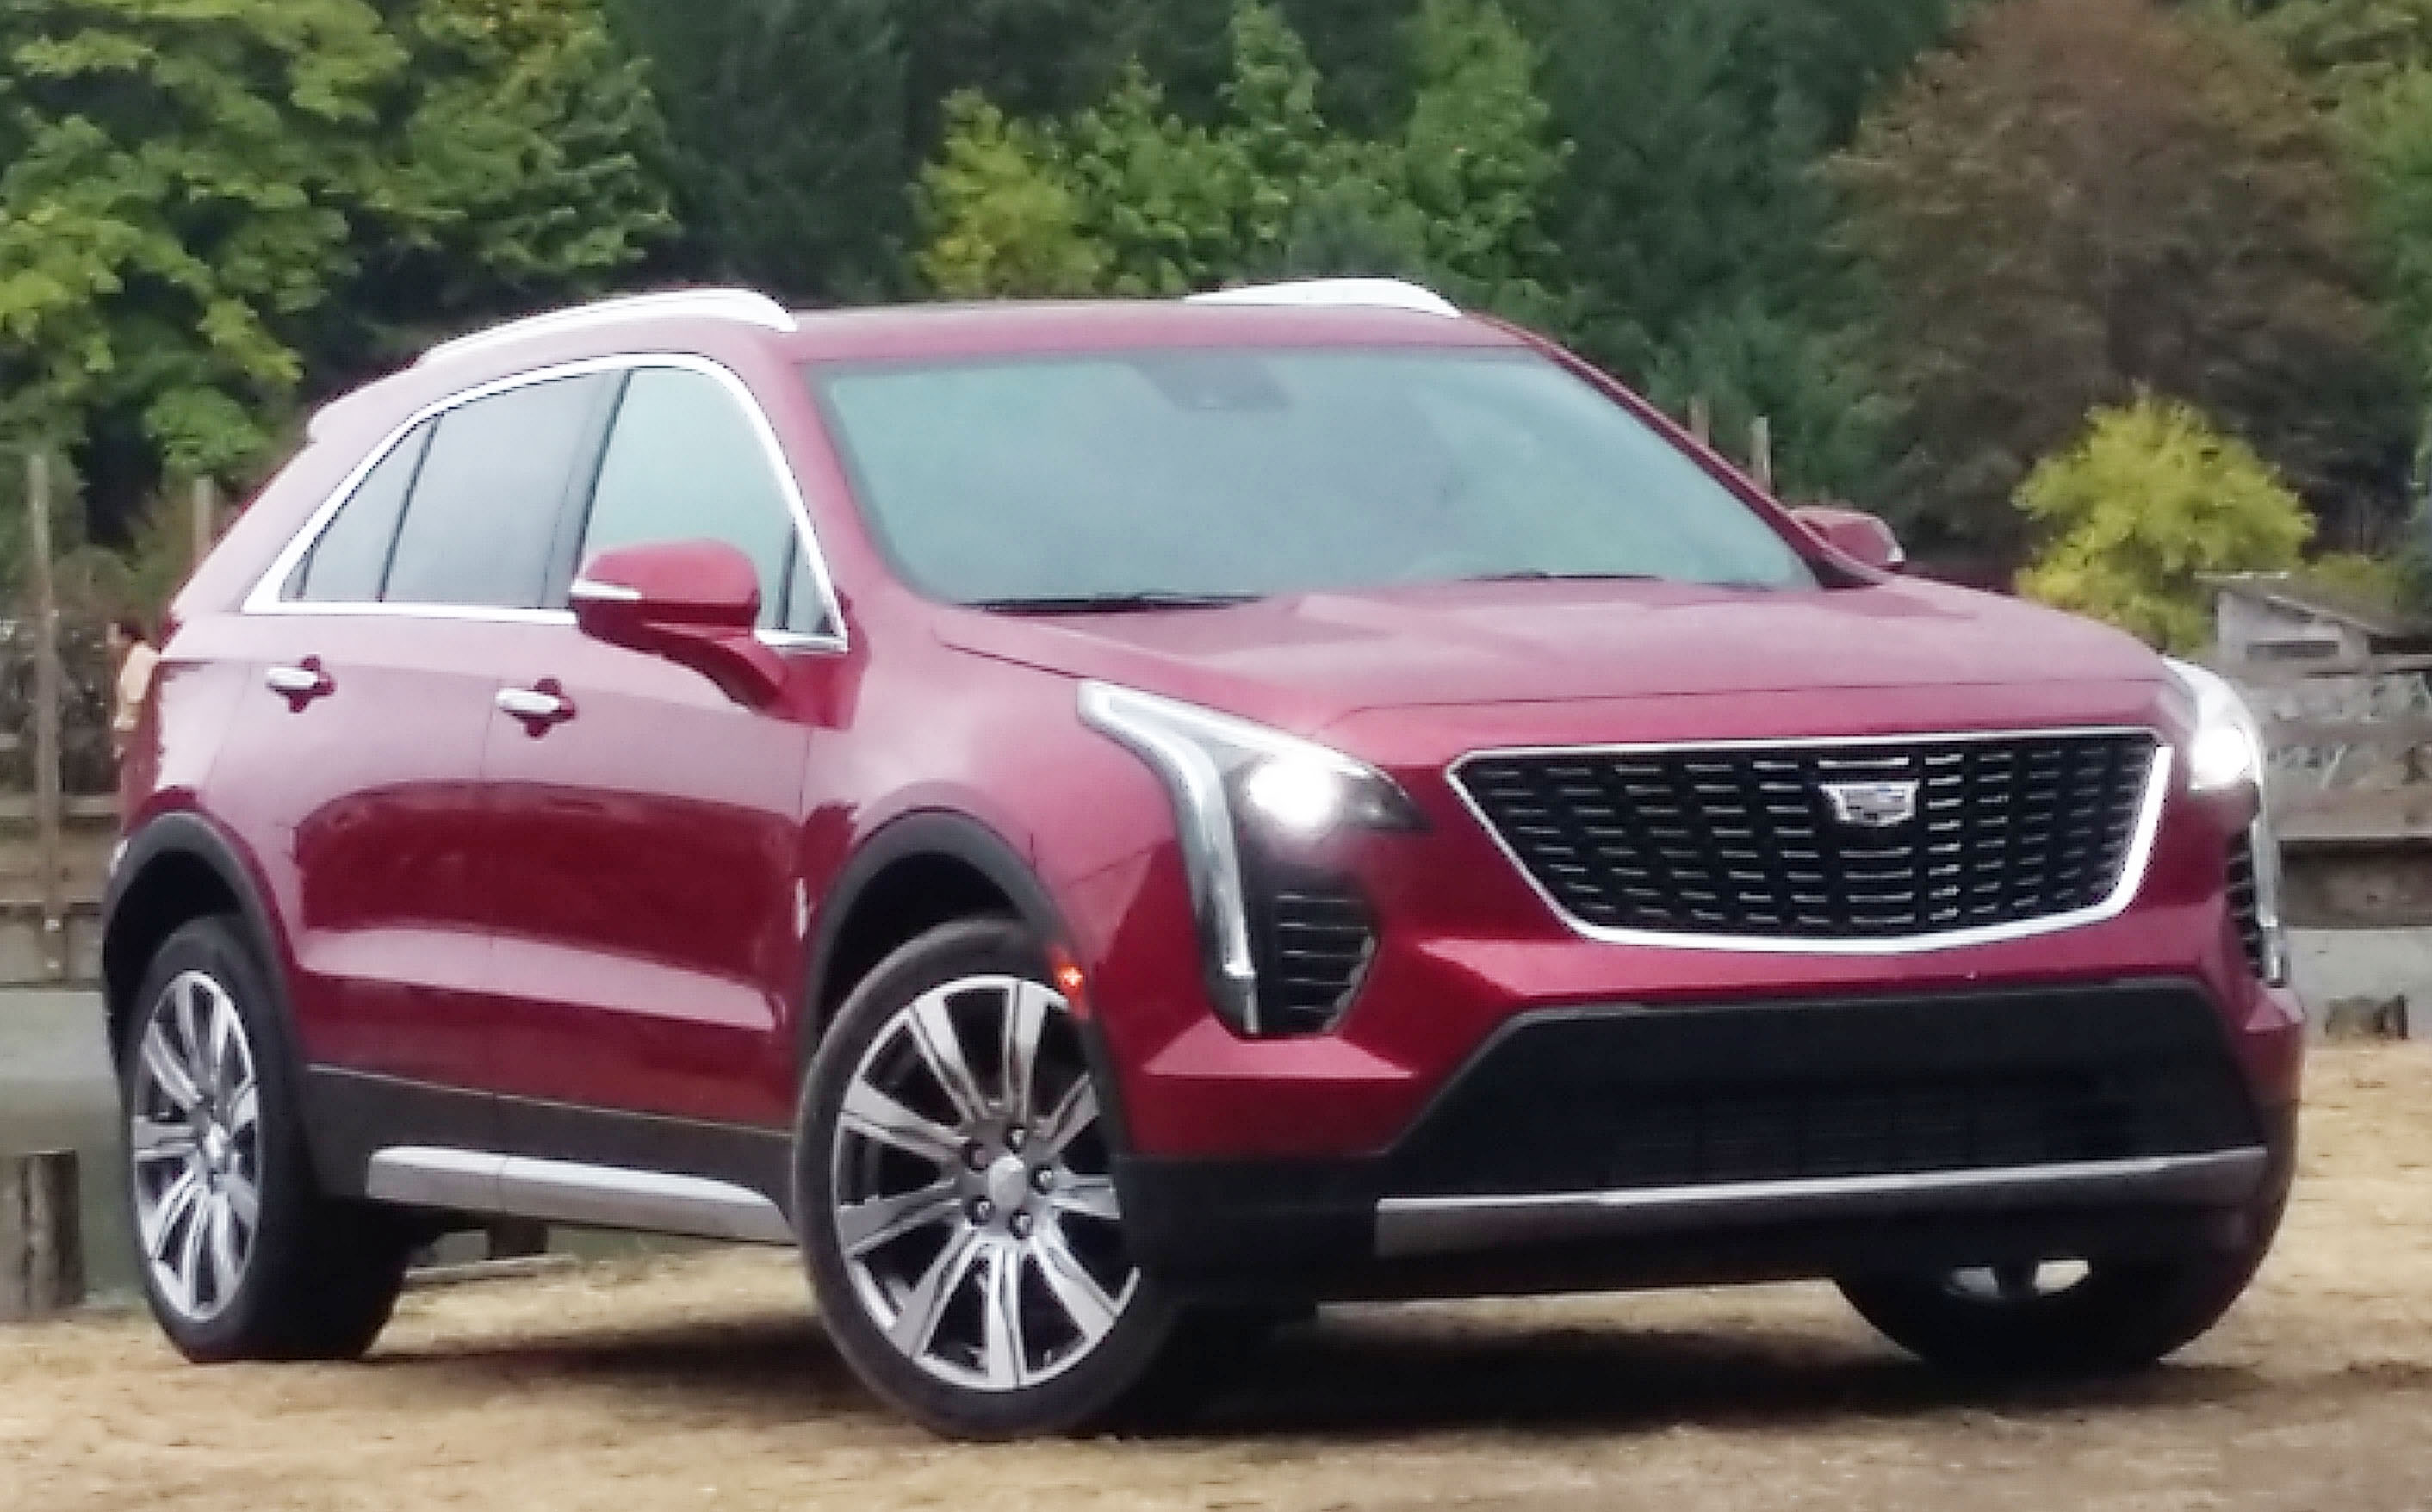 2019 Cadillac XT4 The Daily Drive | Consumer Guide®